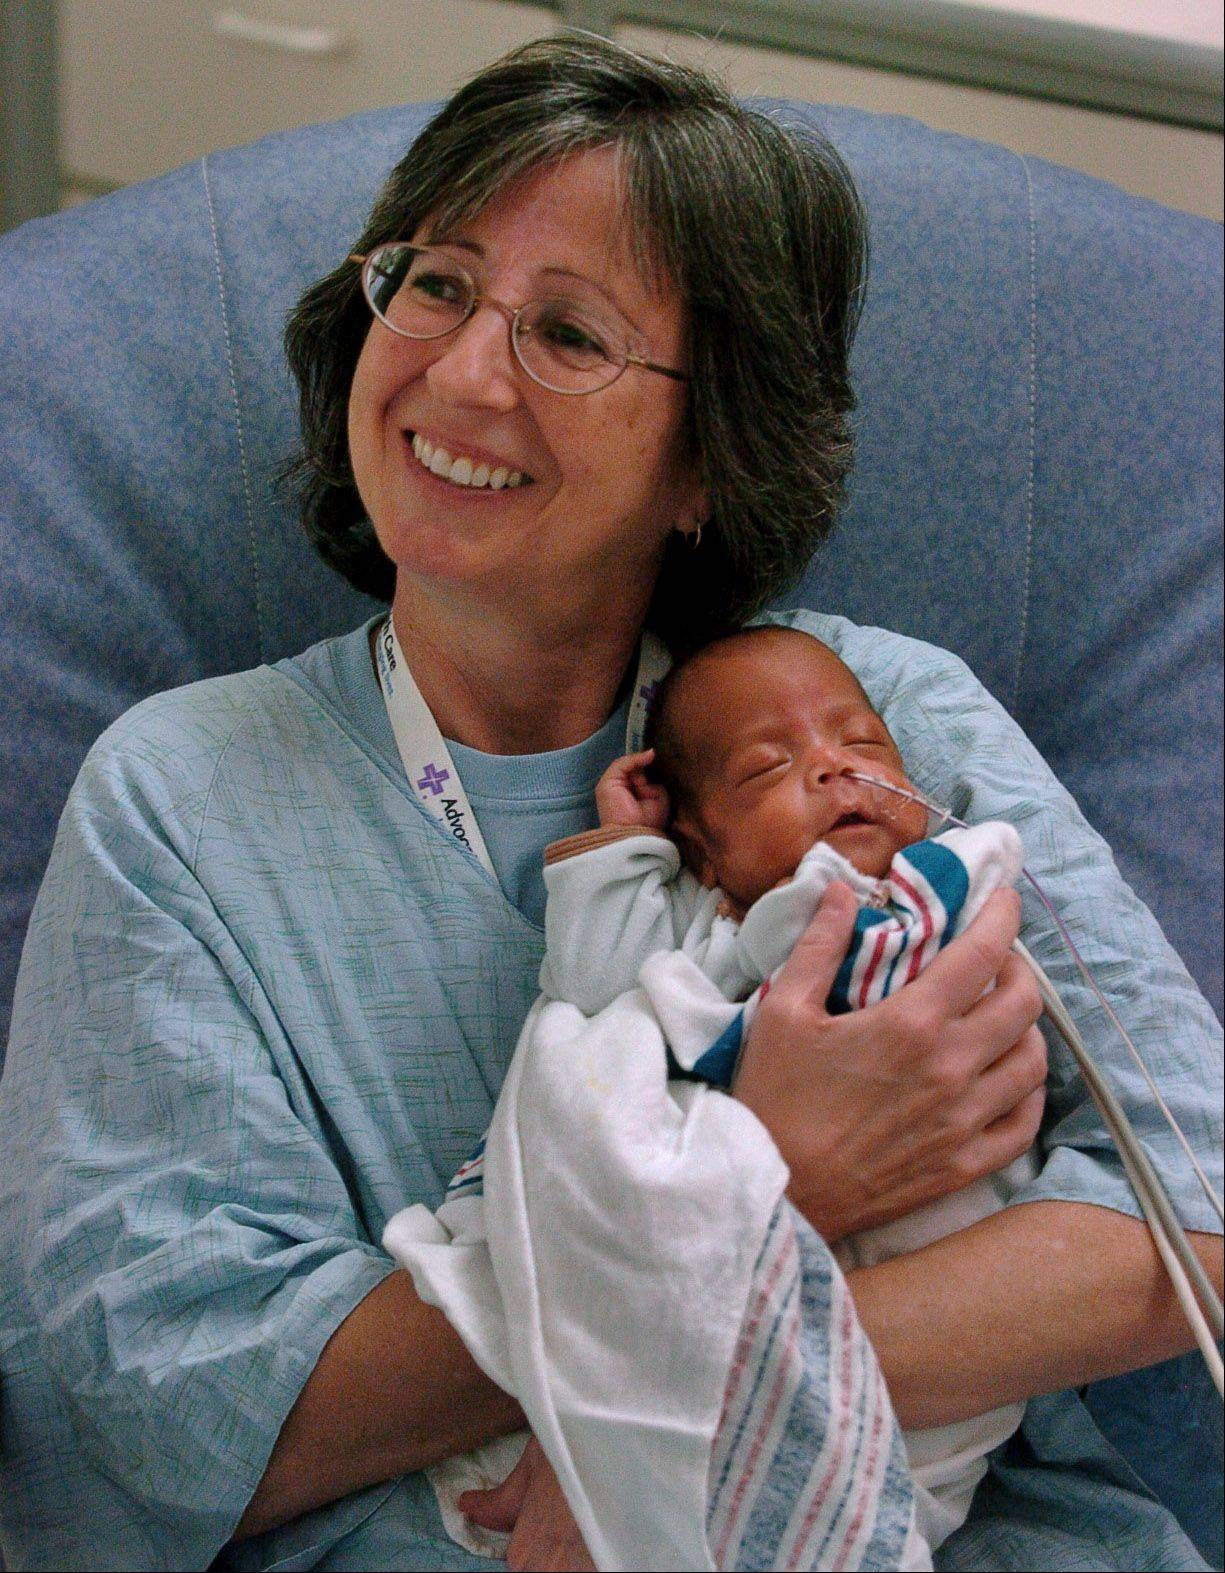 Volunteer Laura O'Shea holding a 3-month-old in the Neonatal Intensive Care Unit at Advocate Lutheran General Hospital in Park Ridge.